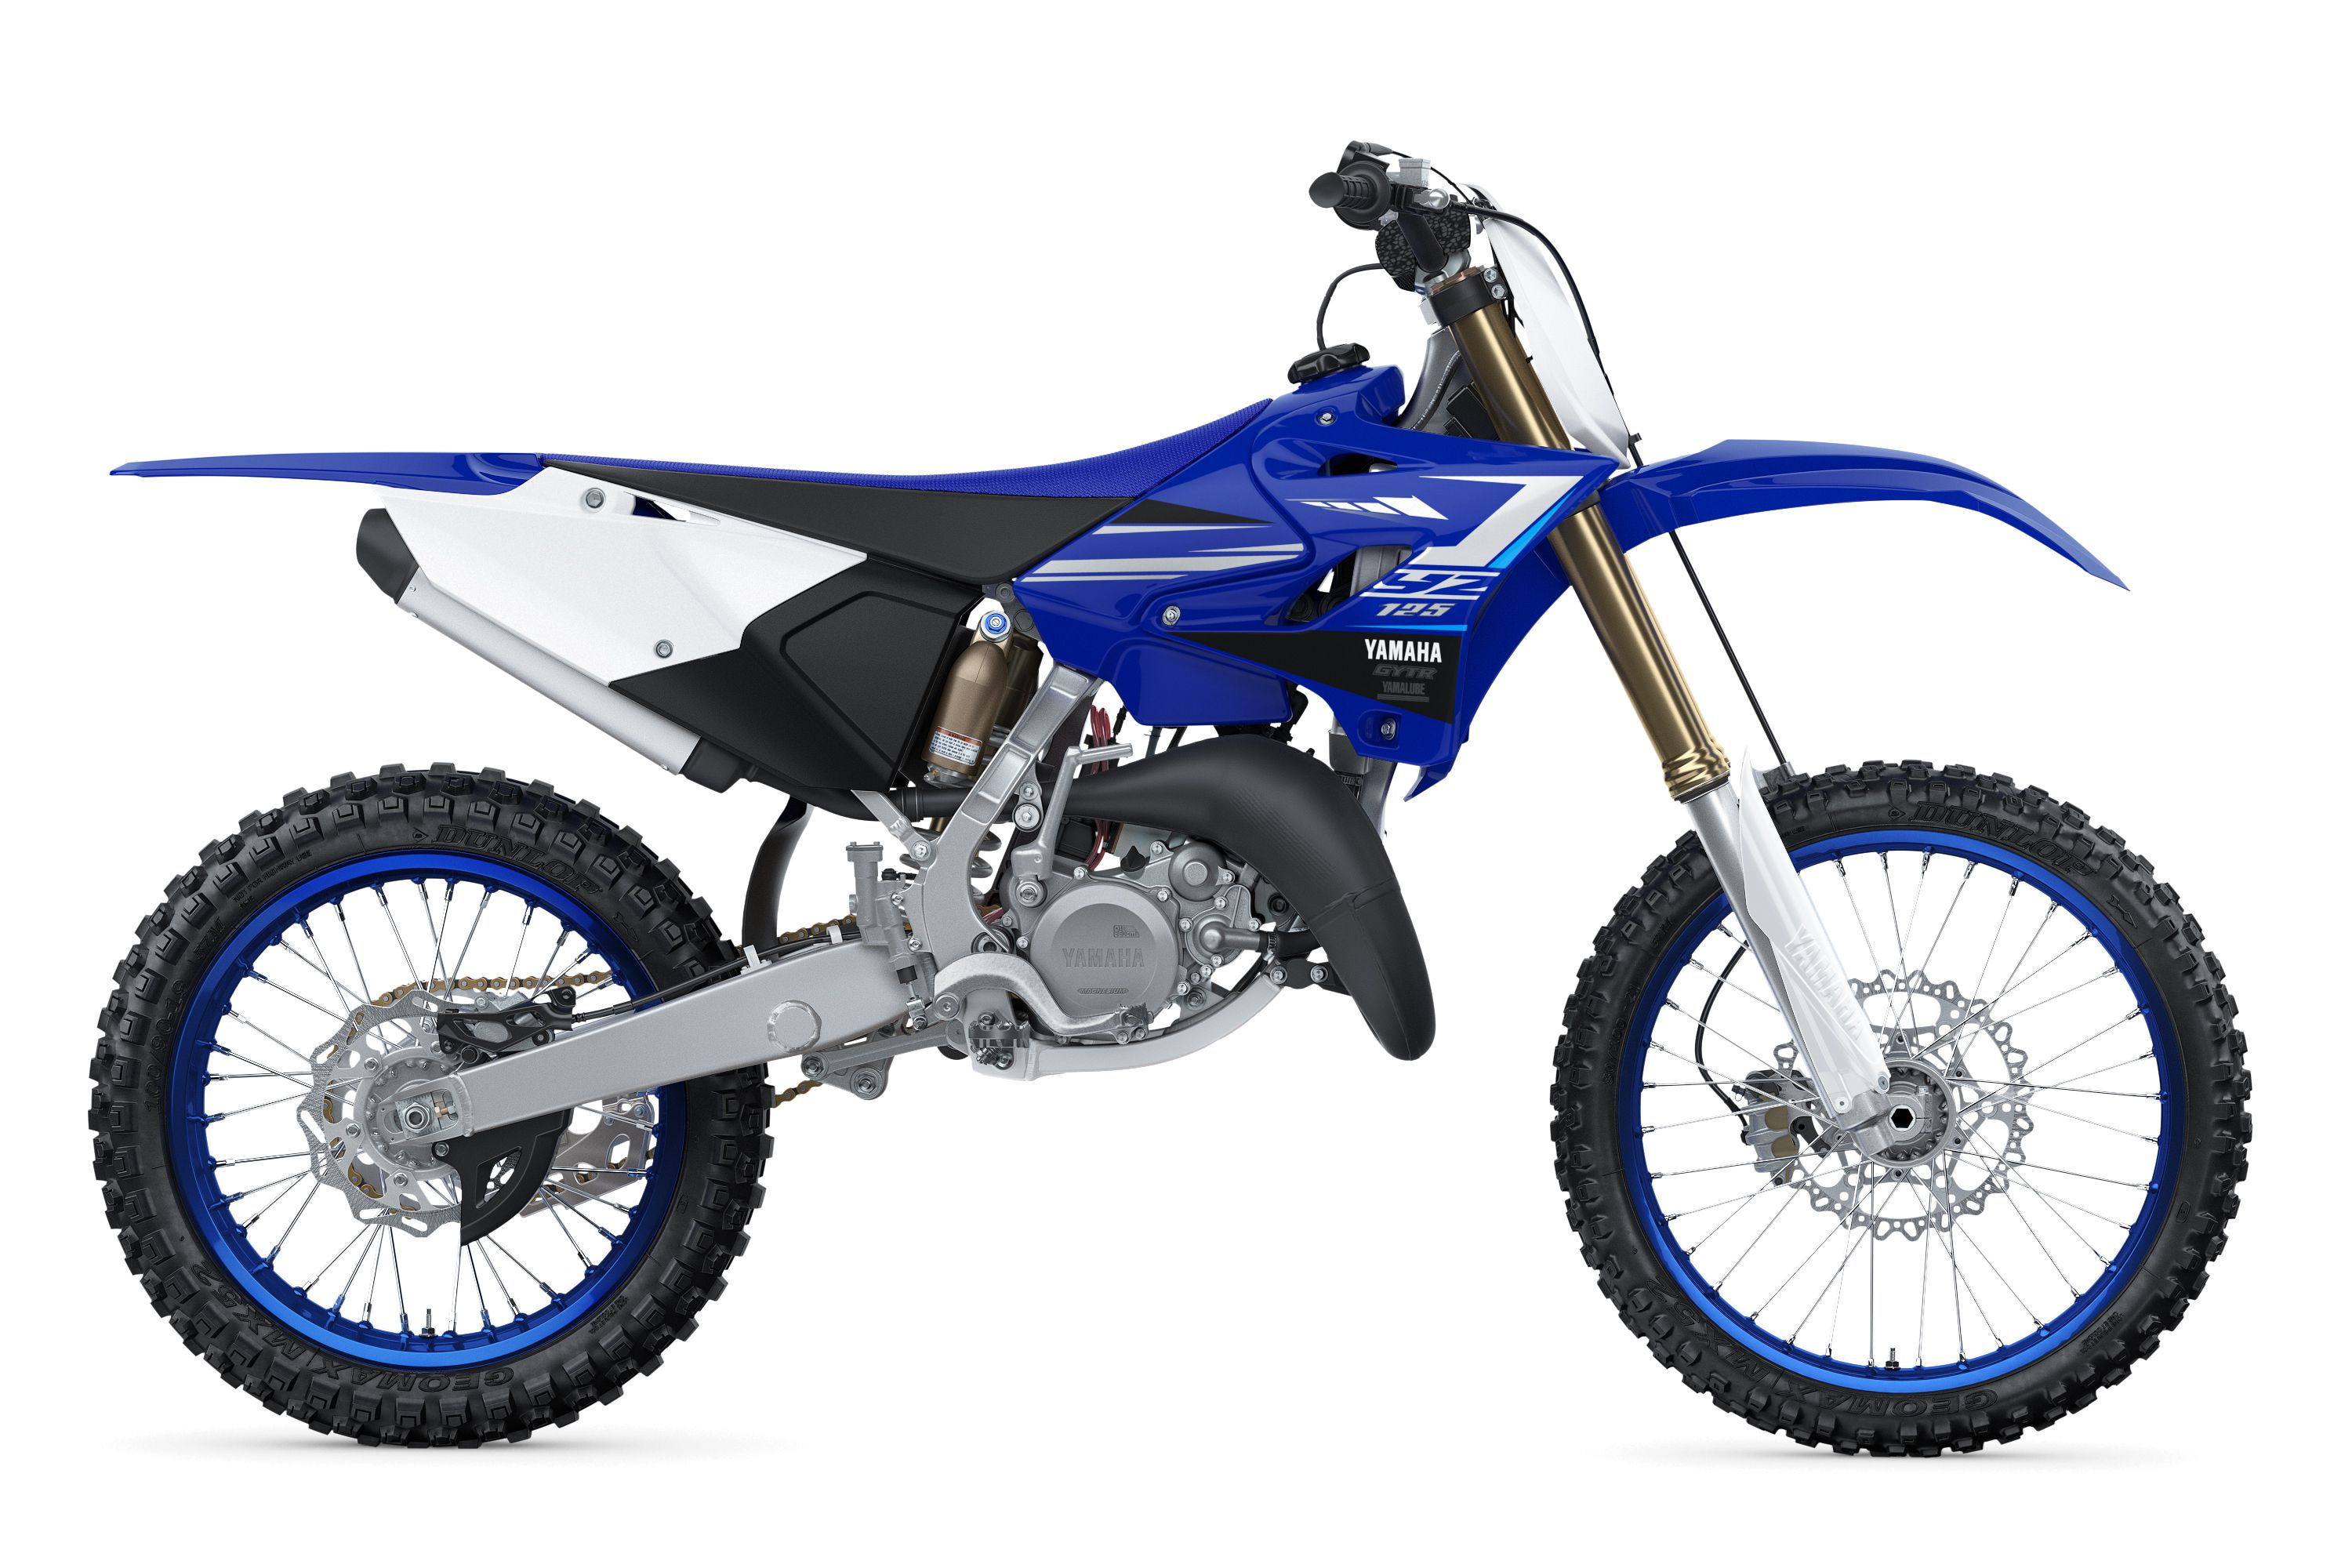 2020 yamaha yz125 | cycle world  cycle world